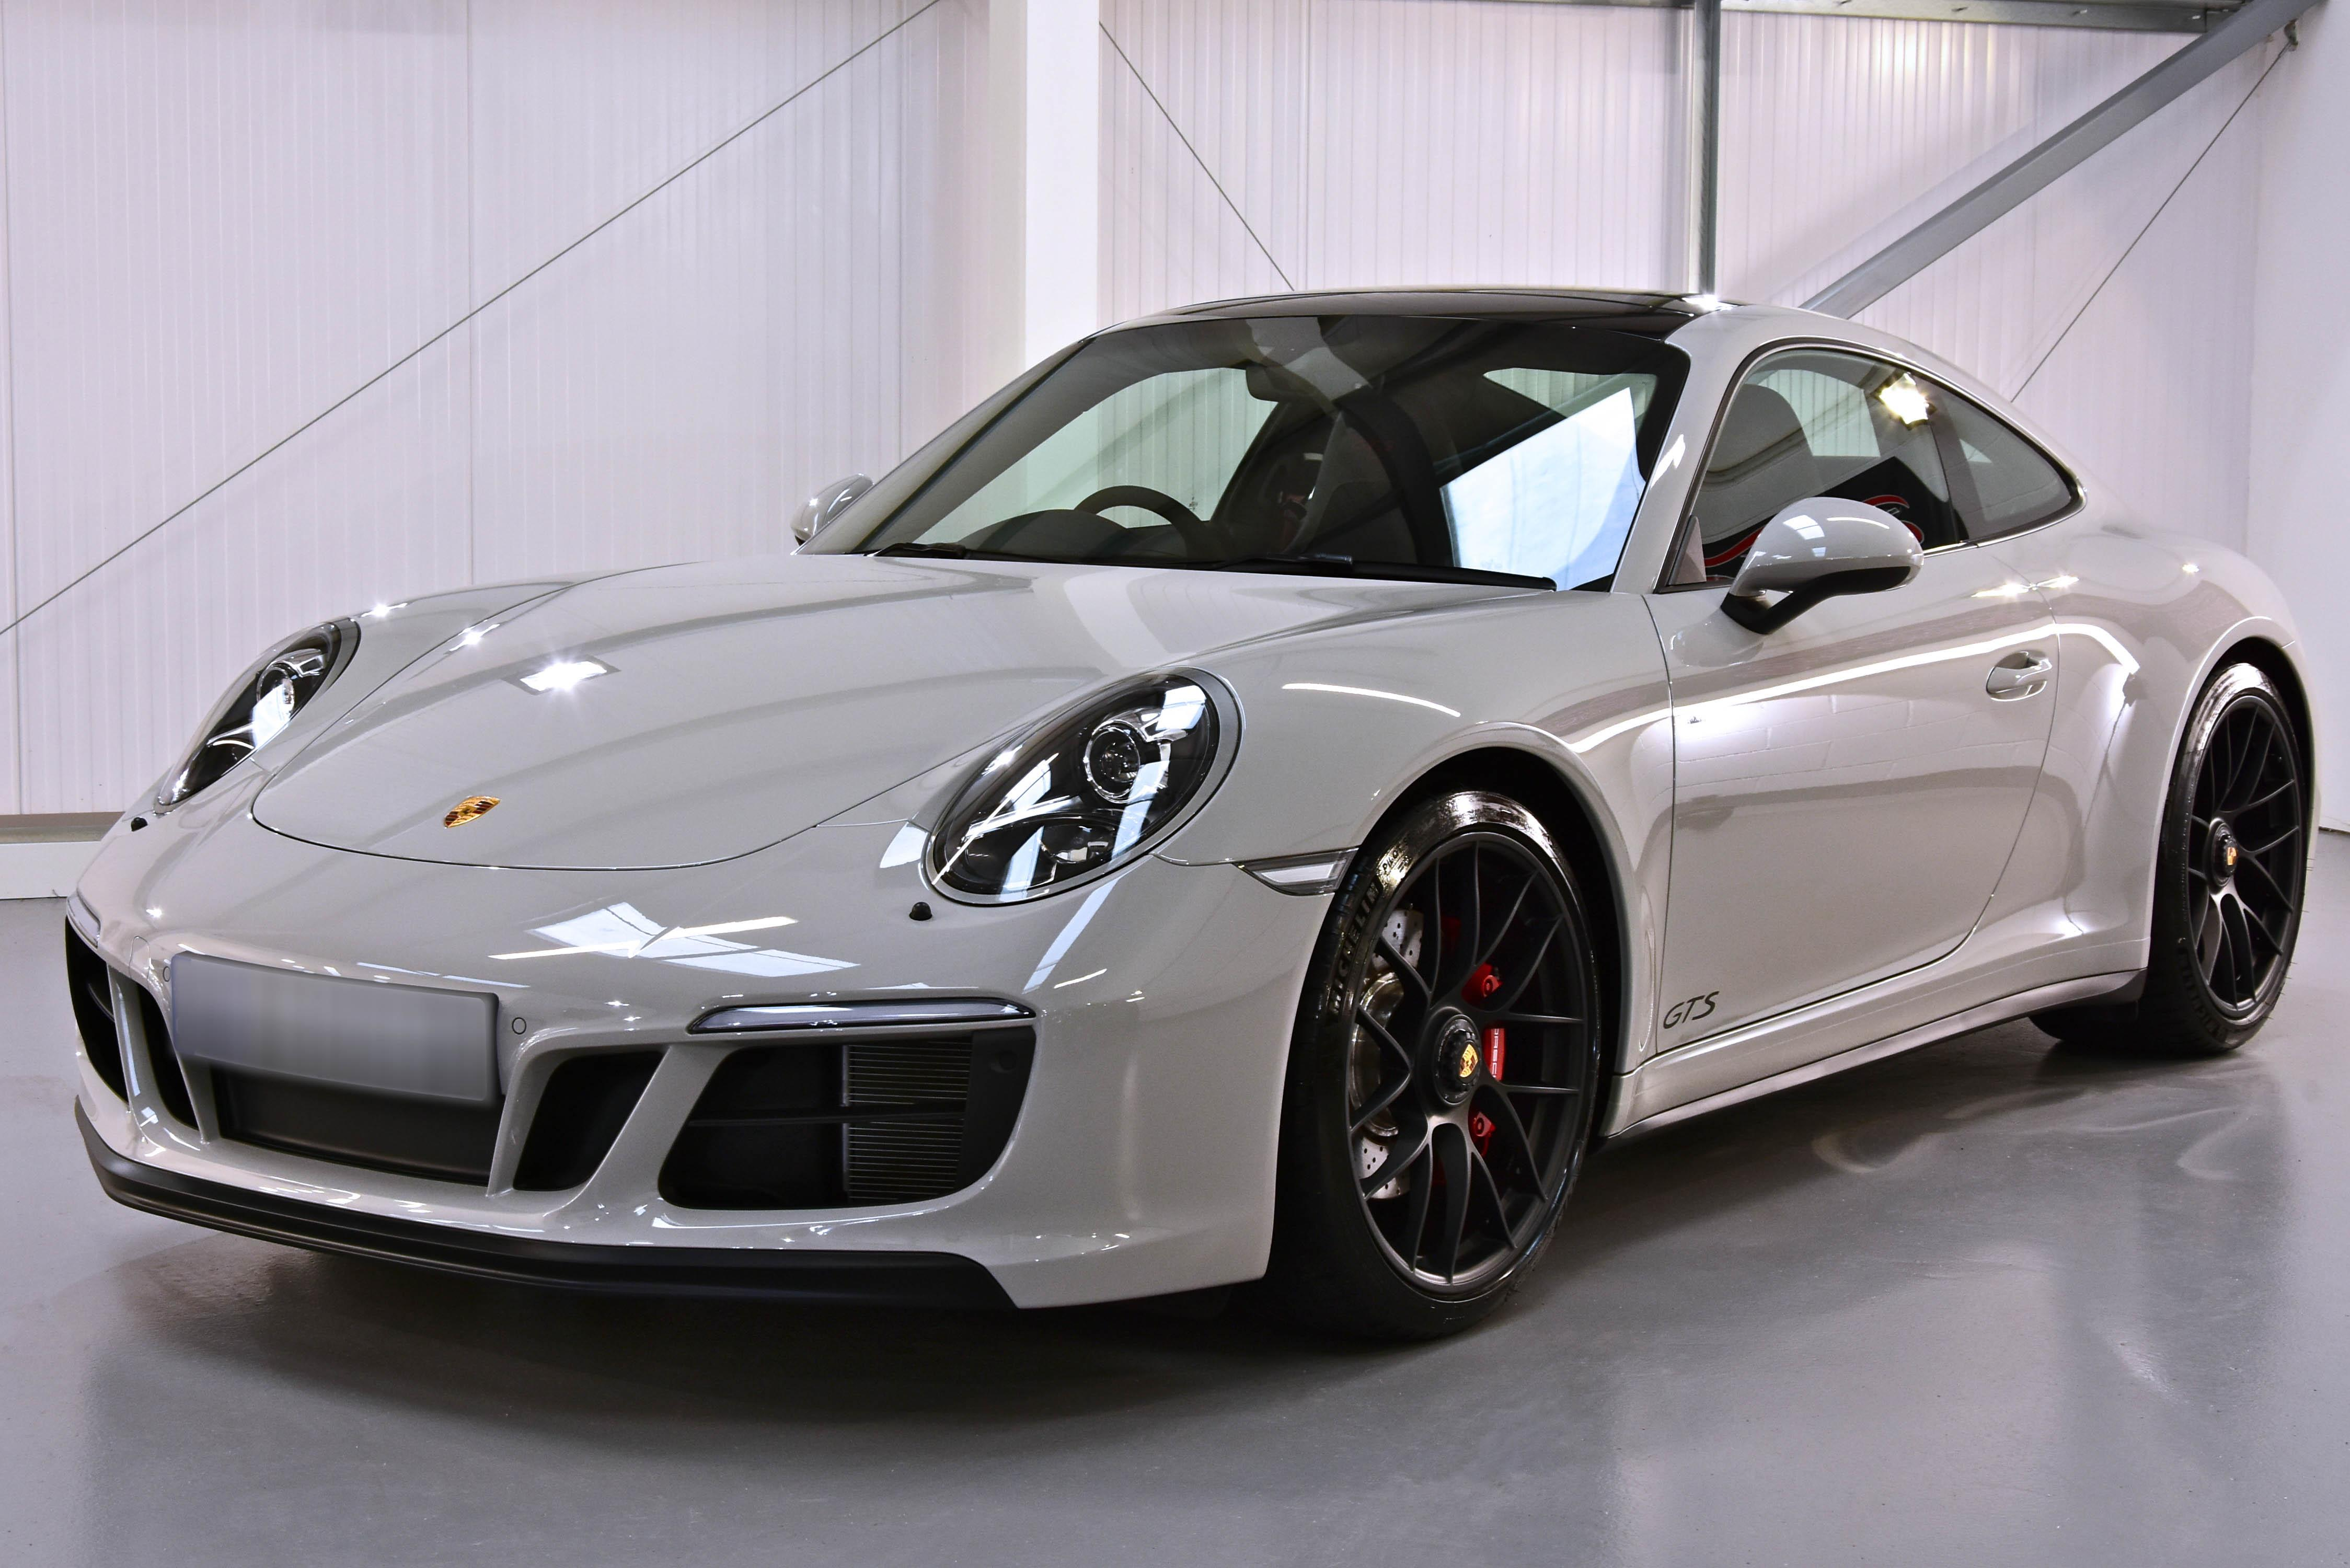 Porsche 911 GTS New Car Enhancment and Protection Detail with Gtechniq Crystal Serum Ultra and EXOv4